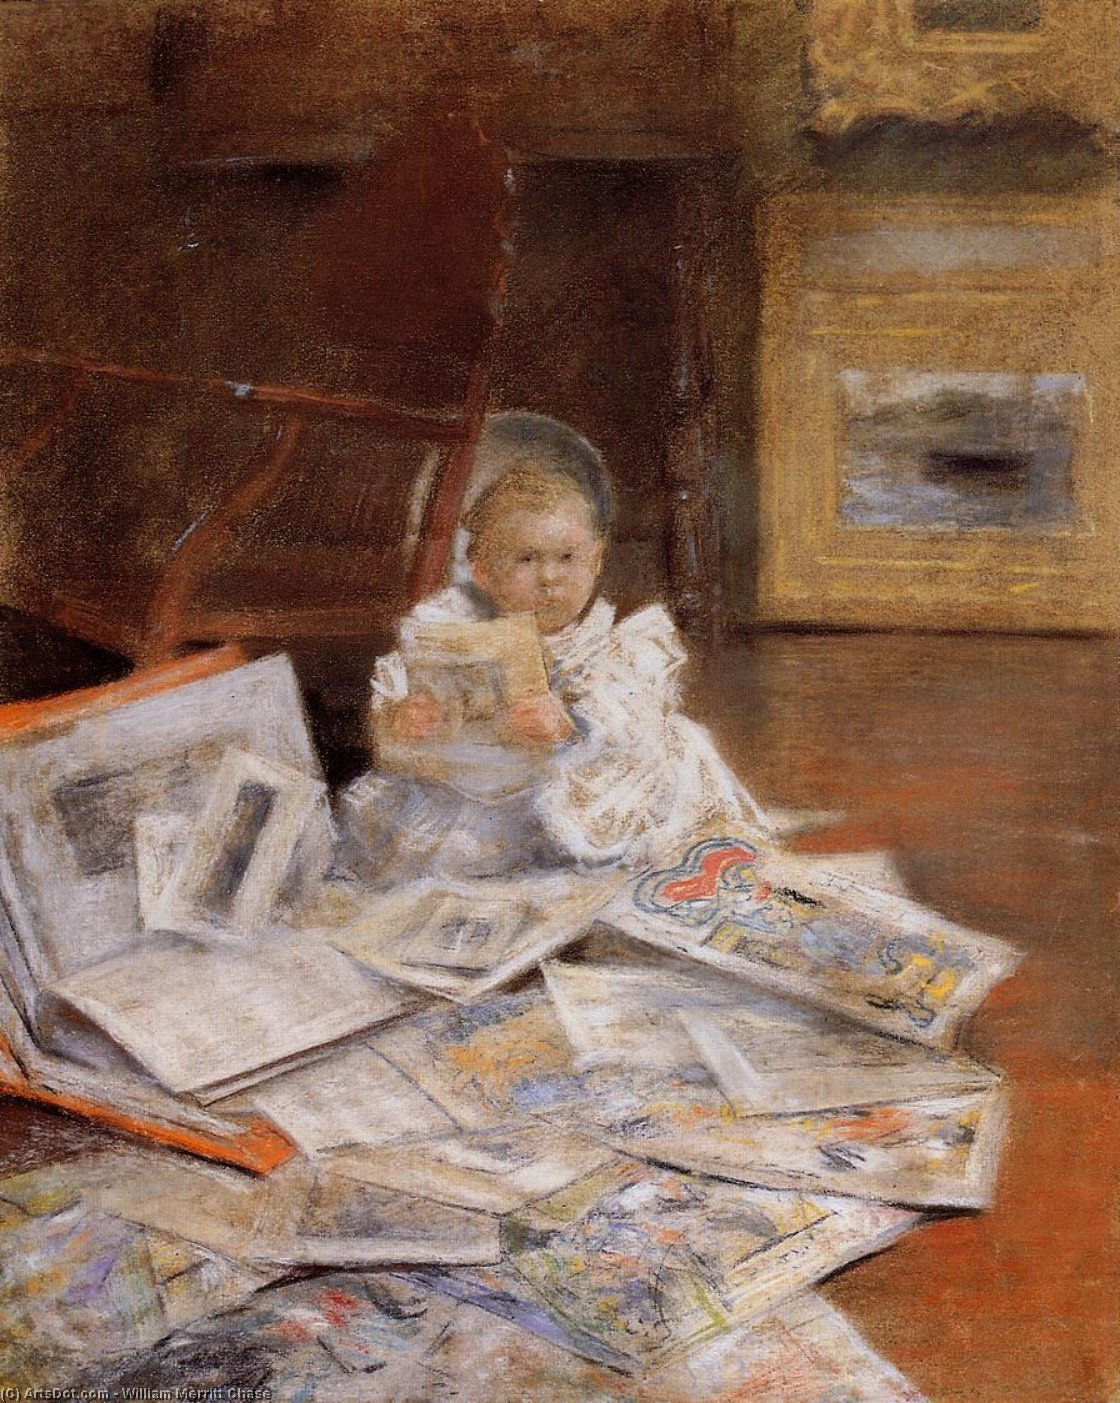 Criança com Prints, Pastel por William Merritt Chase (1849-1916, United States)